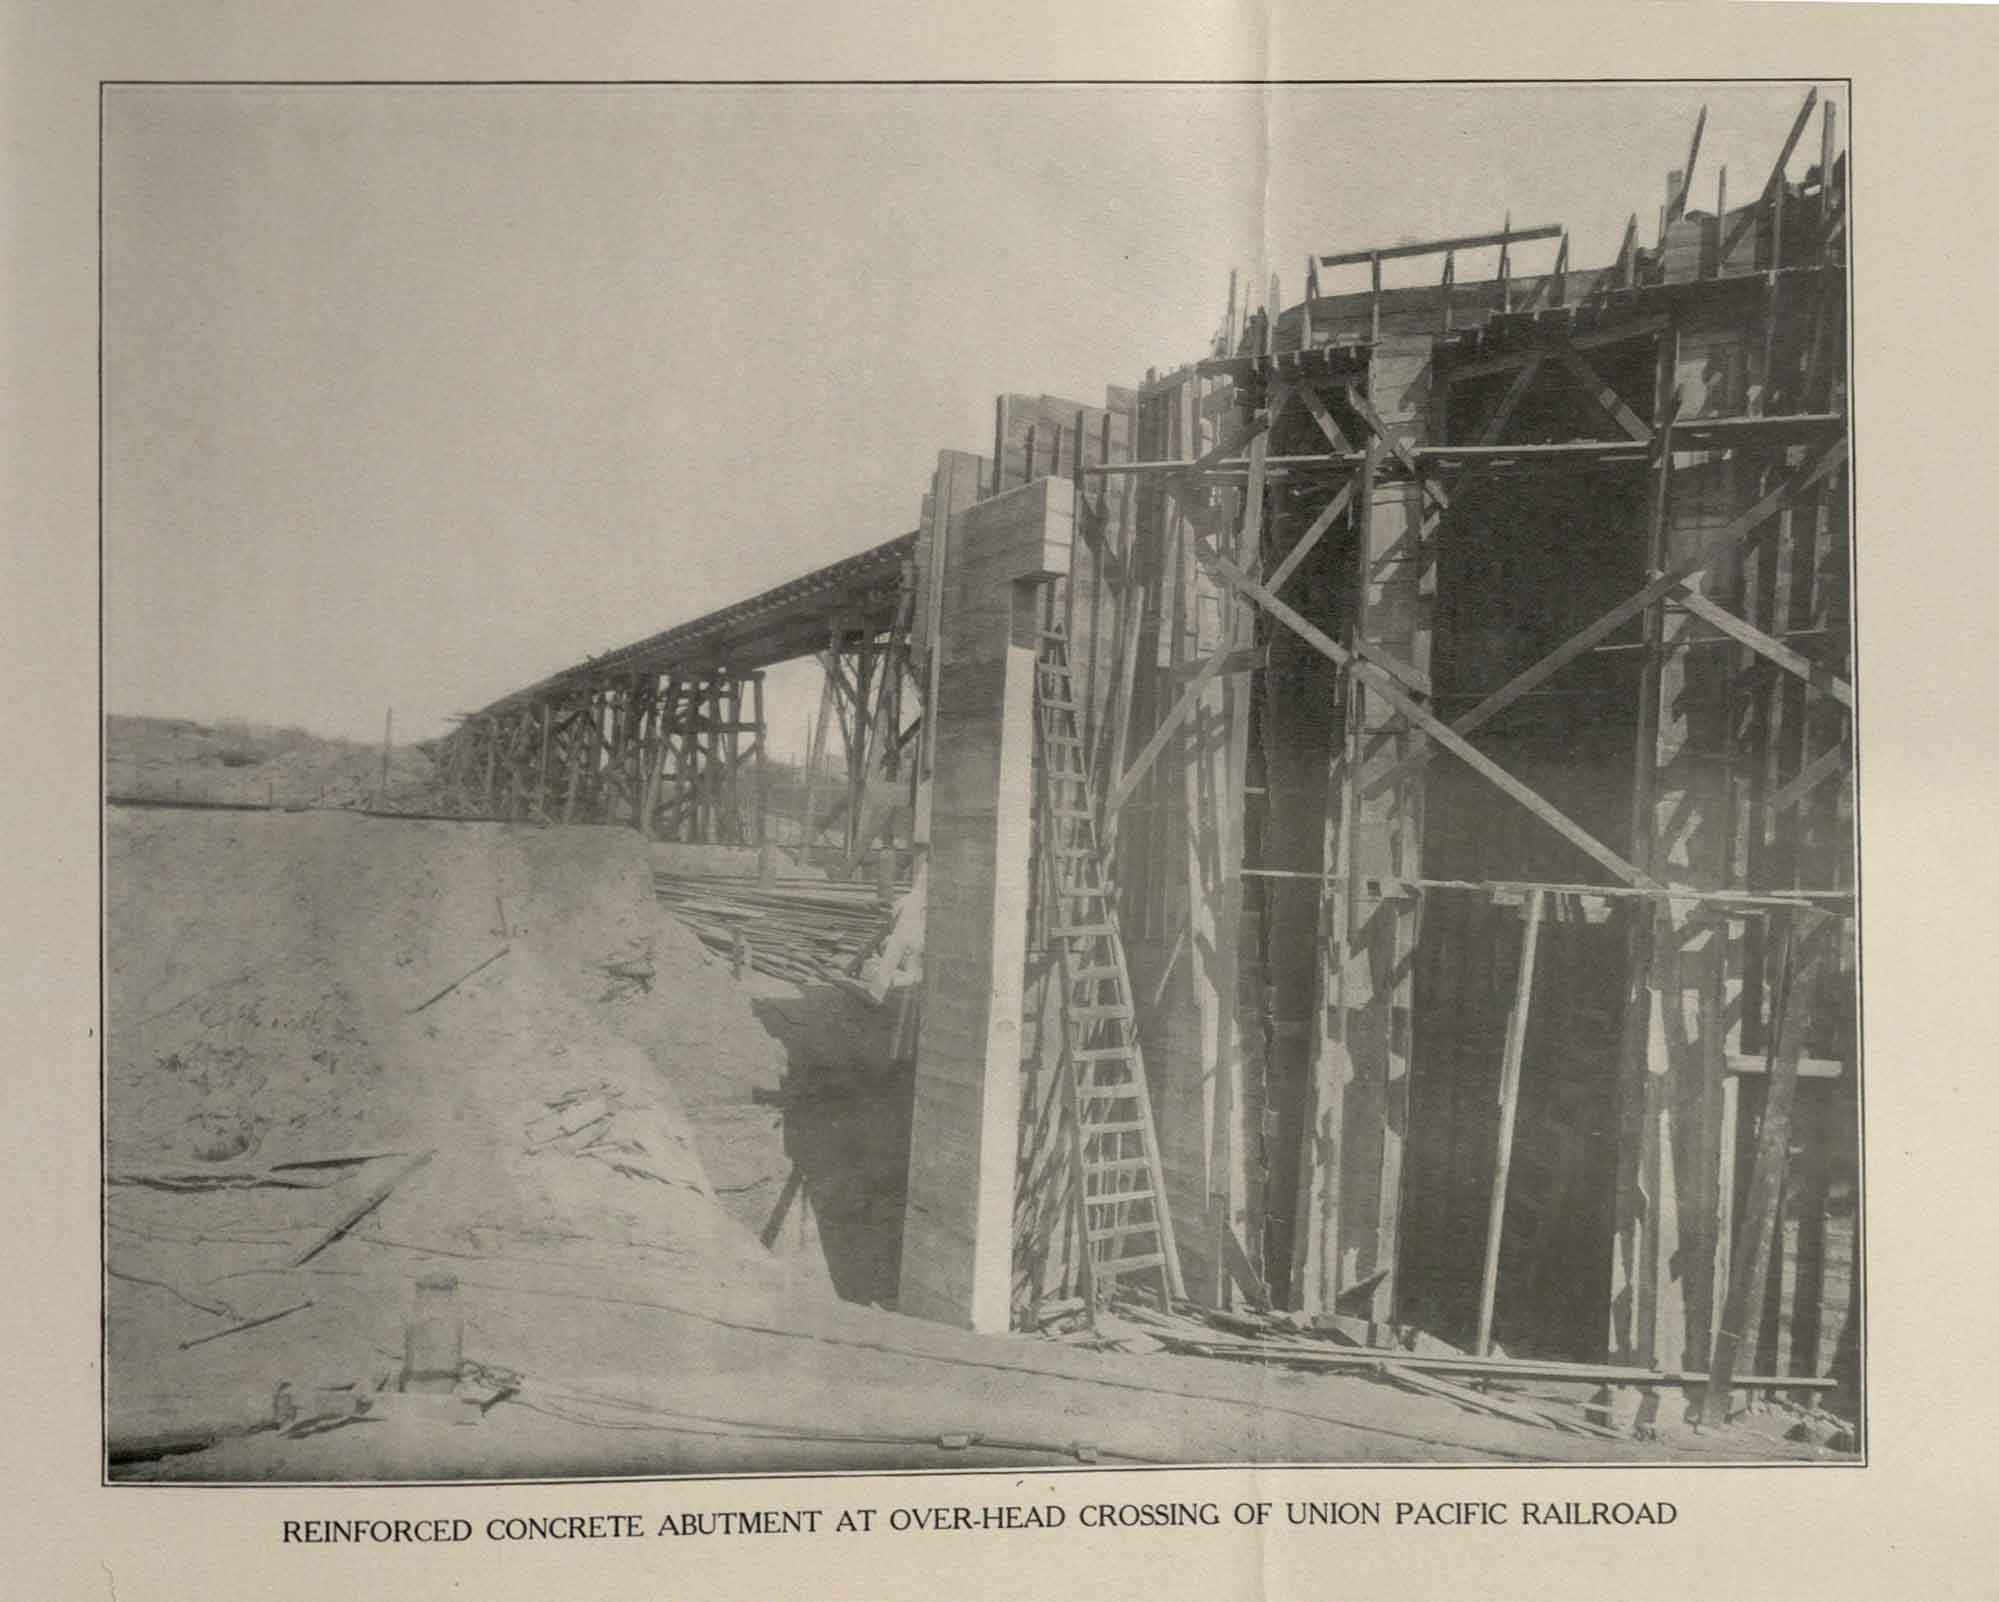 Construction of Railroad Bridge, 1912